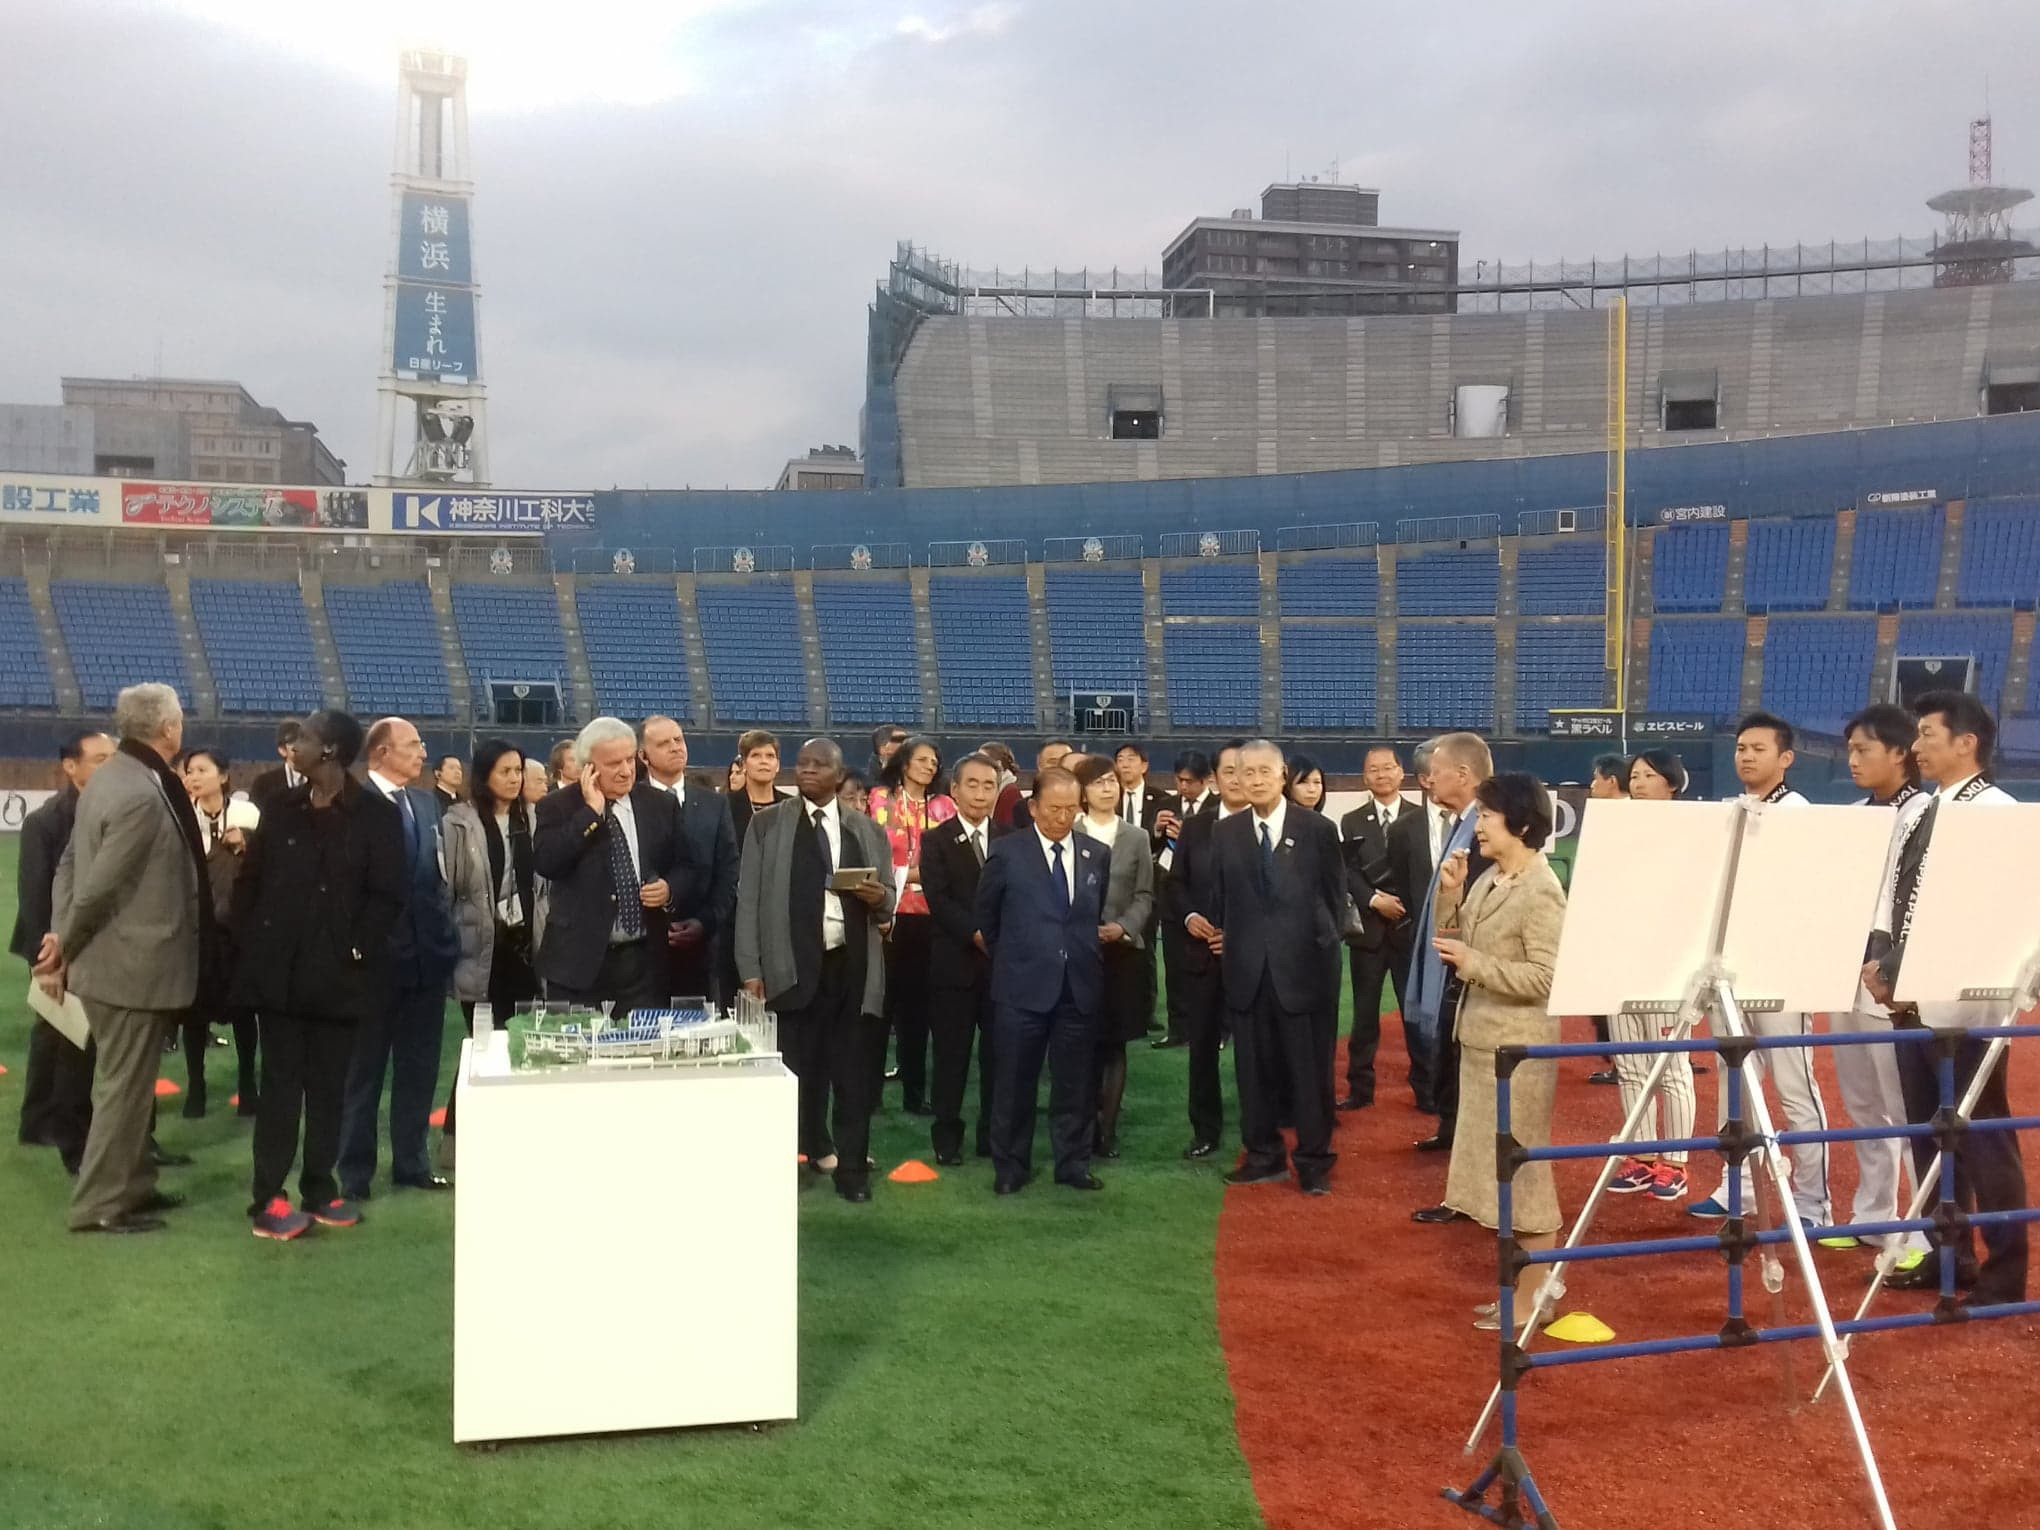 Yokohama Mayor Fumiko Hayashi explained the upgrades being made to the stadium ©ITG